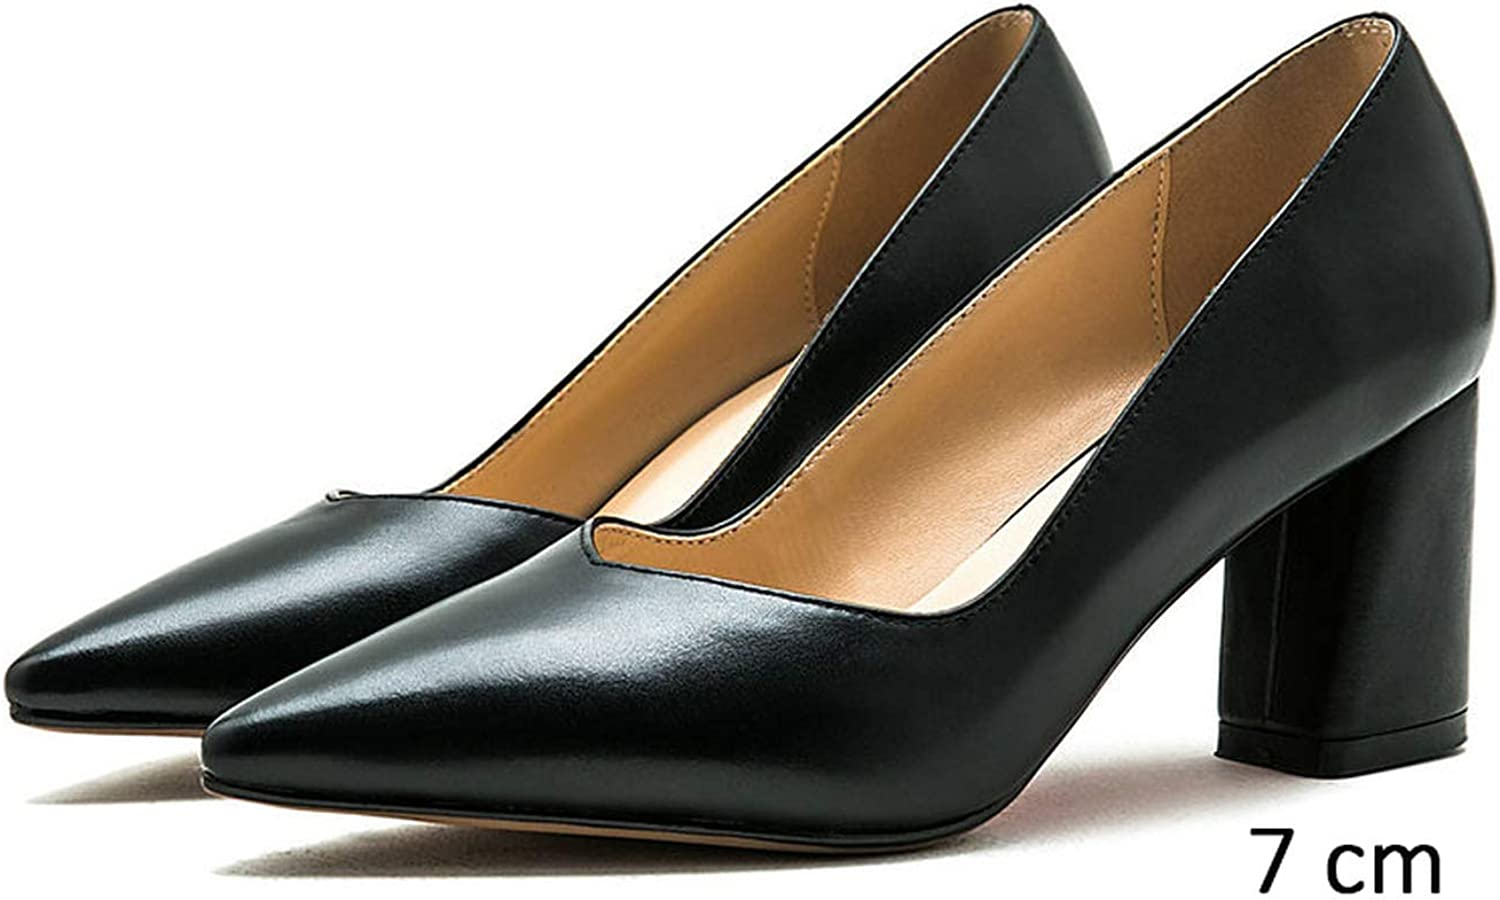 Meiguiyuan High Heels Office Women Pumps Two Heels Classic Spring Women shoes Slip on Pointed Toe shoes